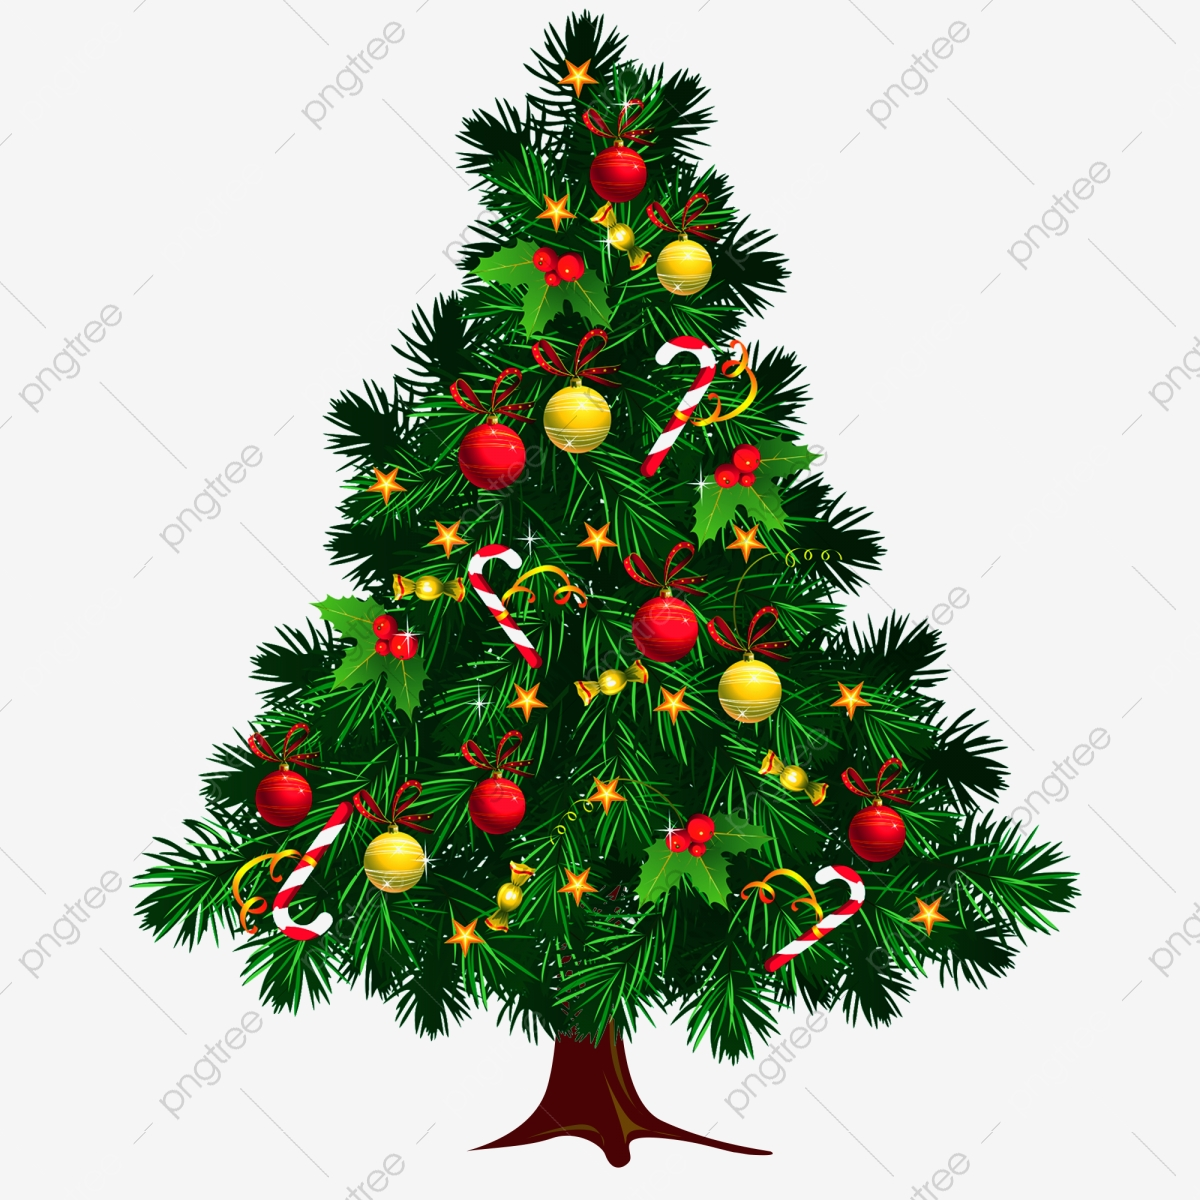 Christmas Tree Png Vector Psd And Clipart With Transparent Background For Free Download Pngtree Please use search to find more variants of pictures and to choose between available options. https pngtree com freepng beautiful christmas elements with christmas trees 3709016 html